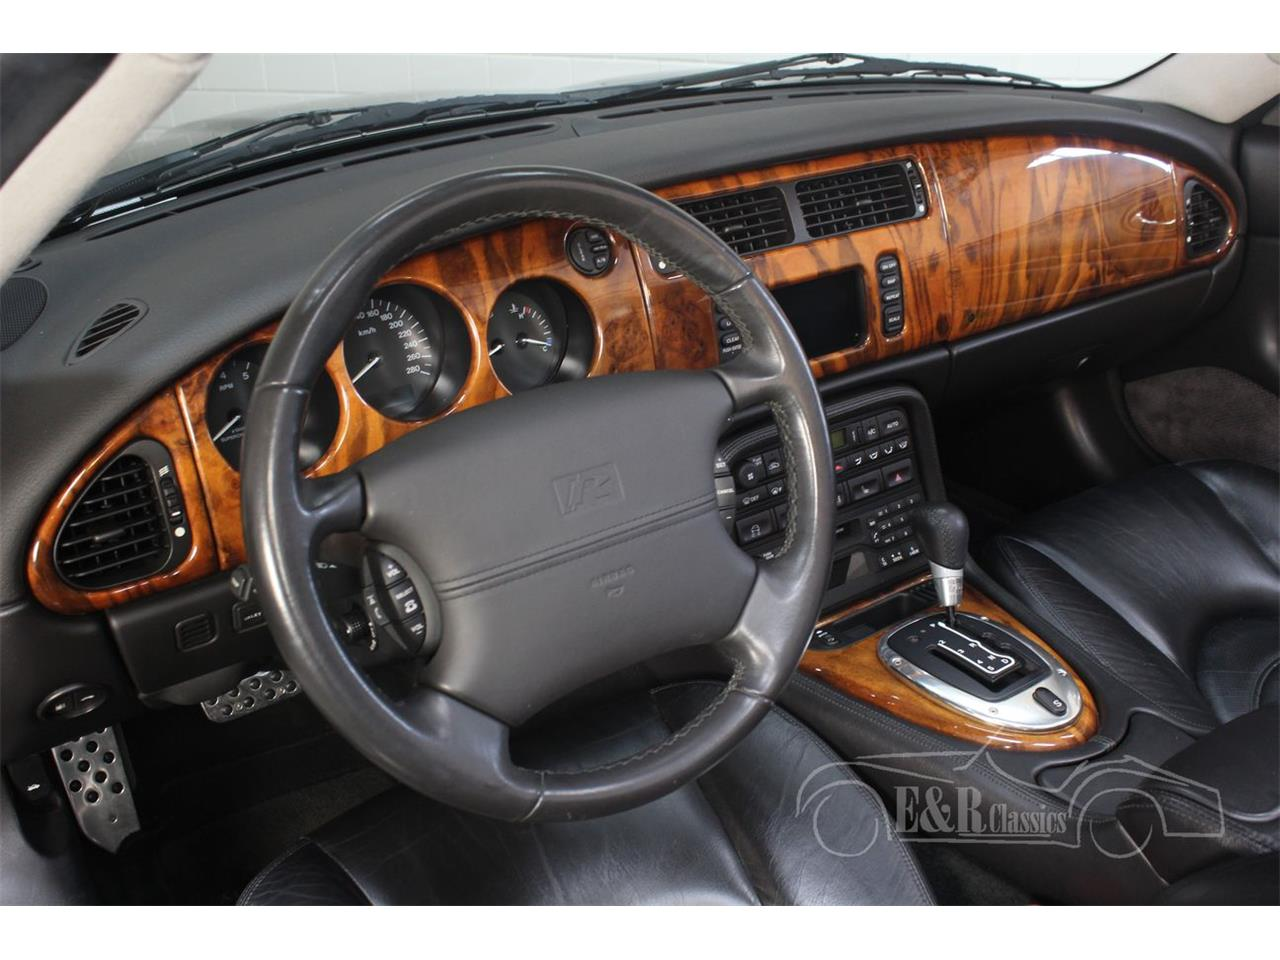 Large Picture of '03 Jaguar XKR located in noord brabant - $39,200.00 - Q3GE